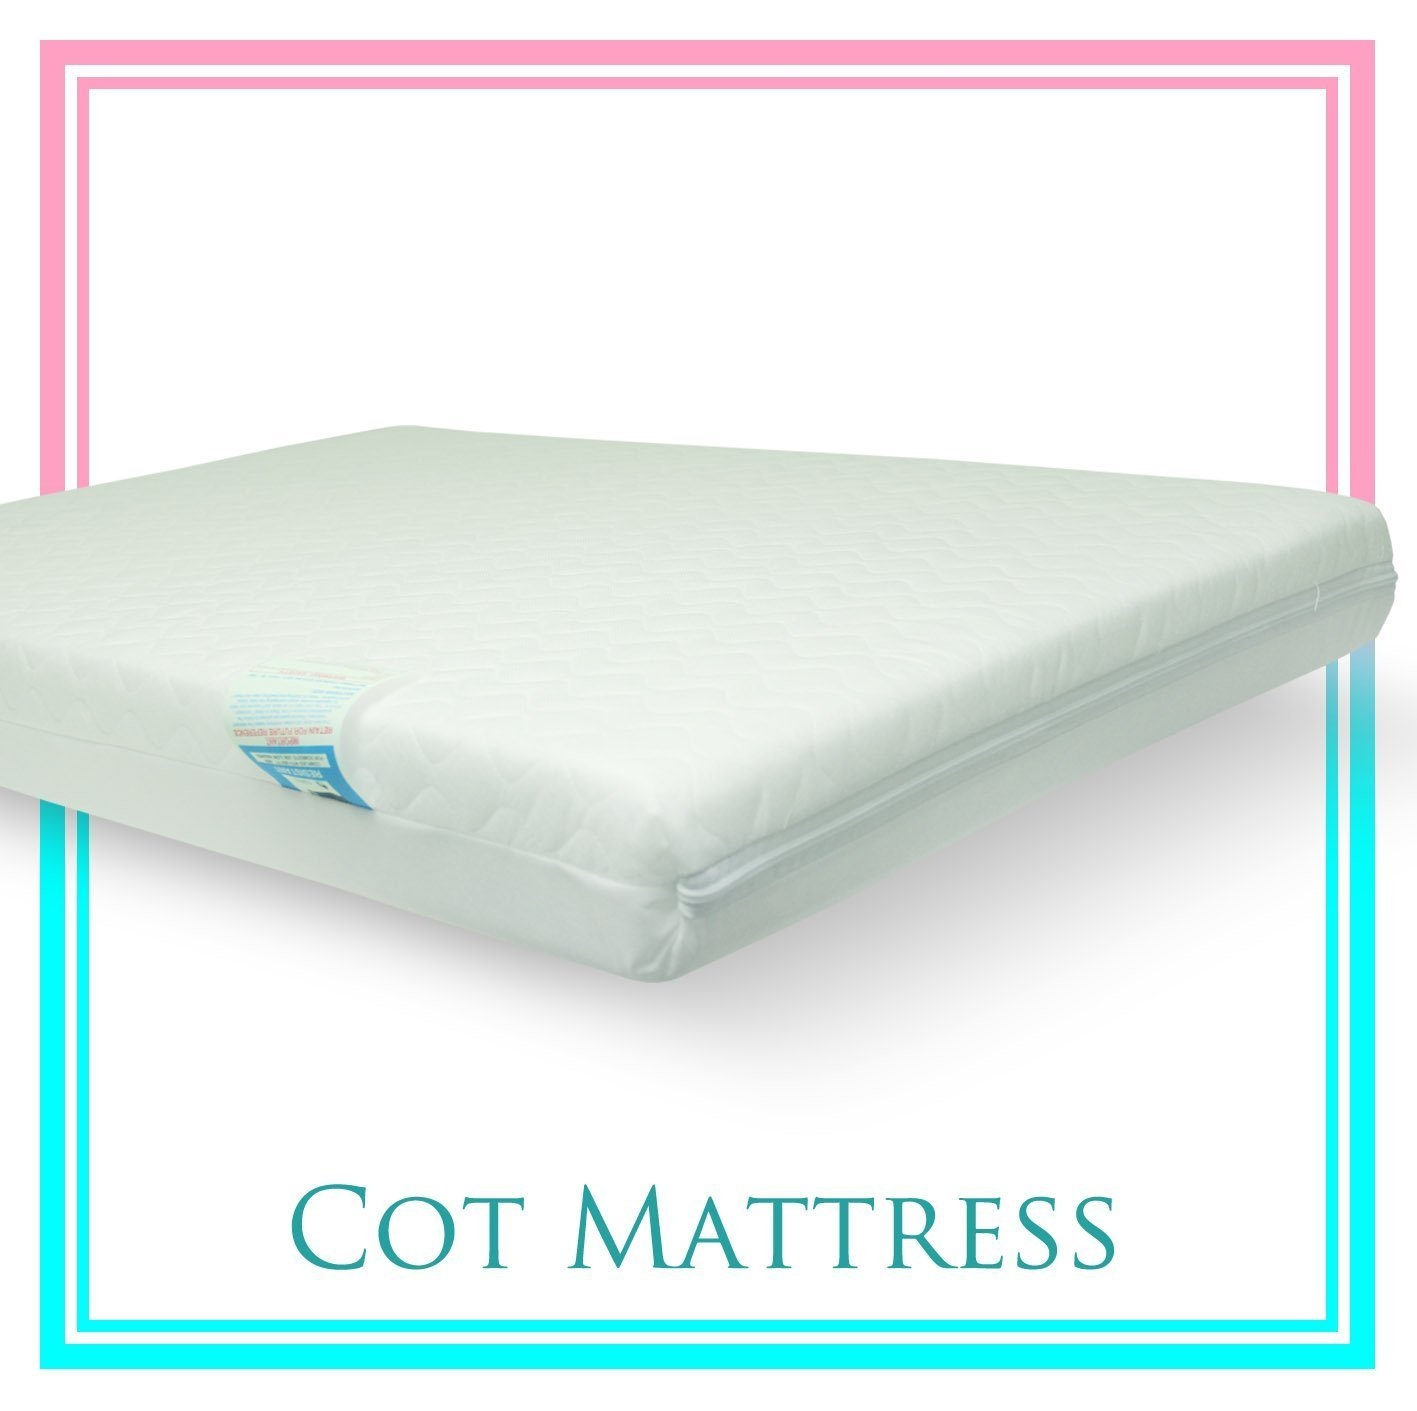 Baby Travel Cot Mattress 95 x 65 x 7.5 CM QUILTED fits most Graco/M&P Cots, Breathable Antiallergenic-A Primeshoppingmall Porter and Lambert